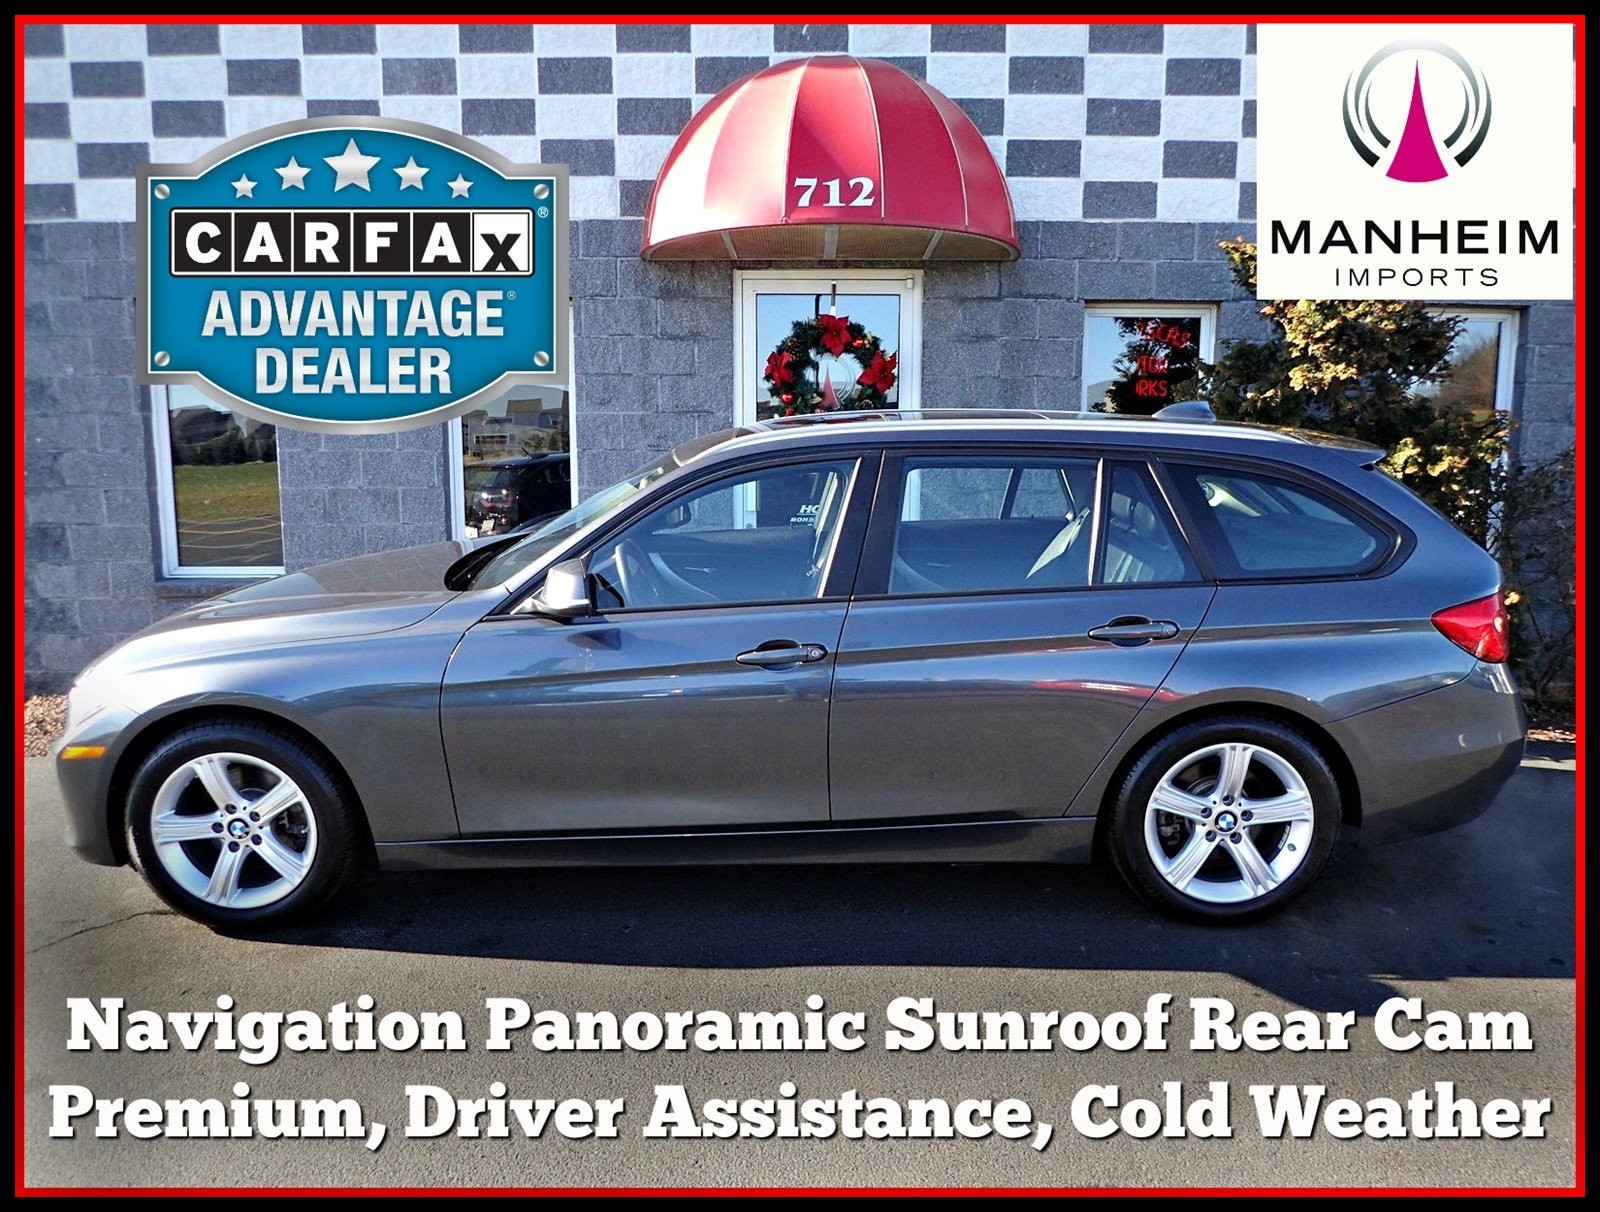 2014 Bmw 328i 0 60 Fresh Pre Owned 2014 Bmw 328i Xdrive Wagon Nav Station Wagon